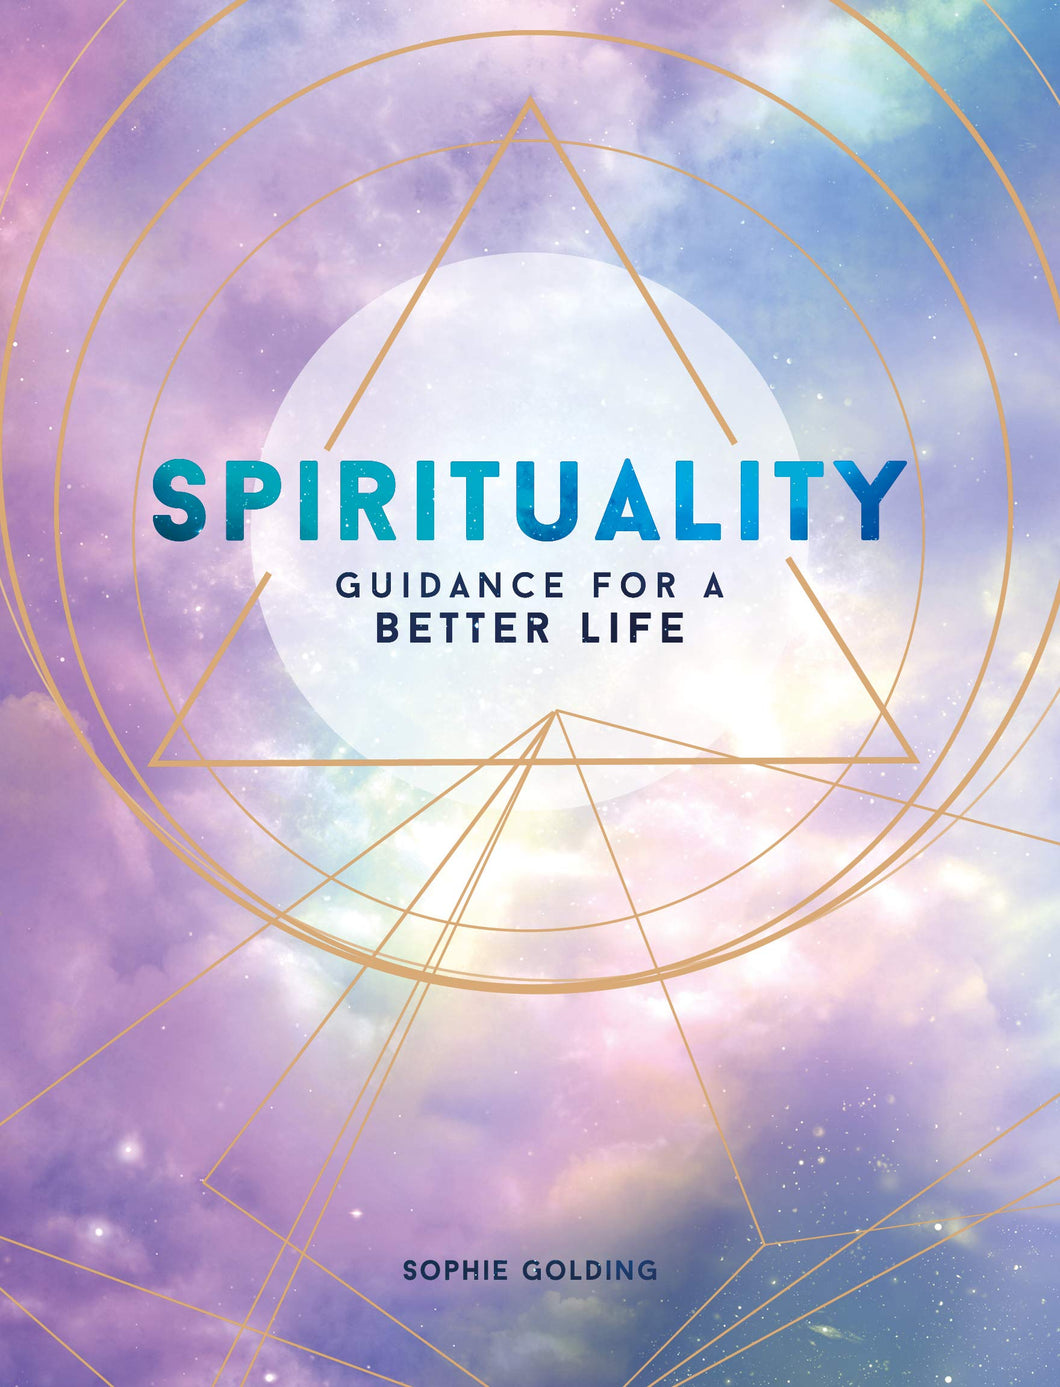 Spirituality: Guidance for a Better Life